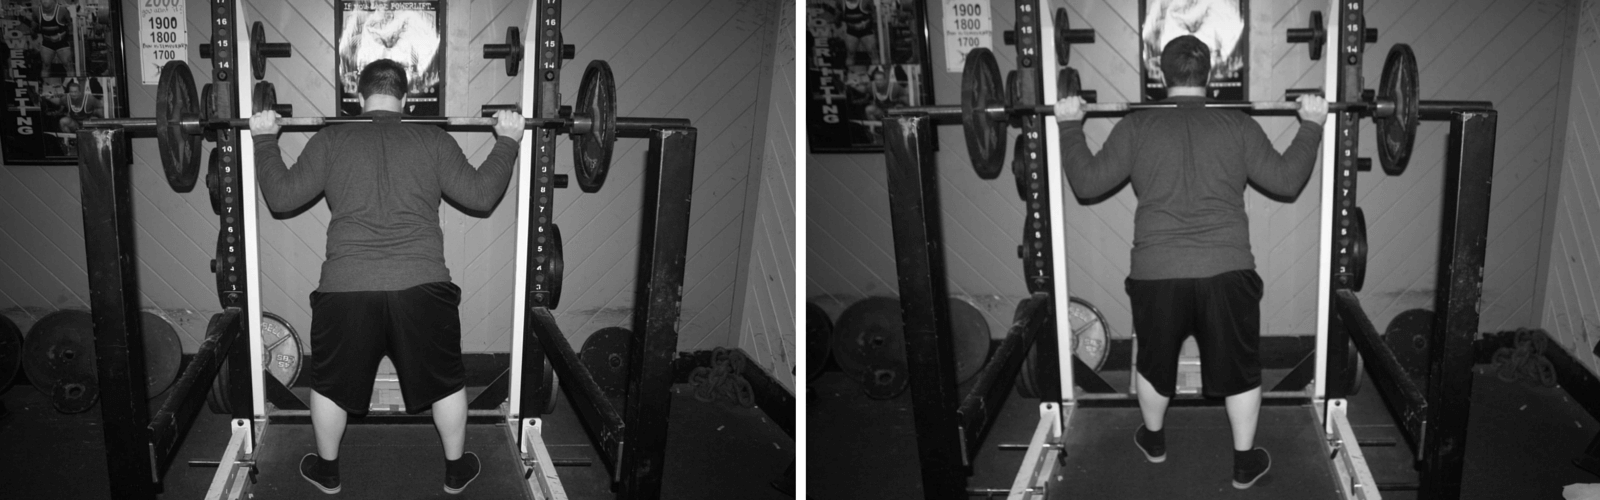 Squat vs. Staggered Stance